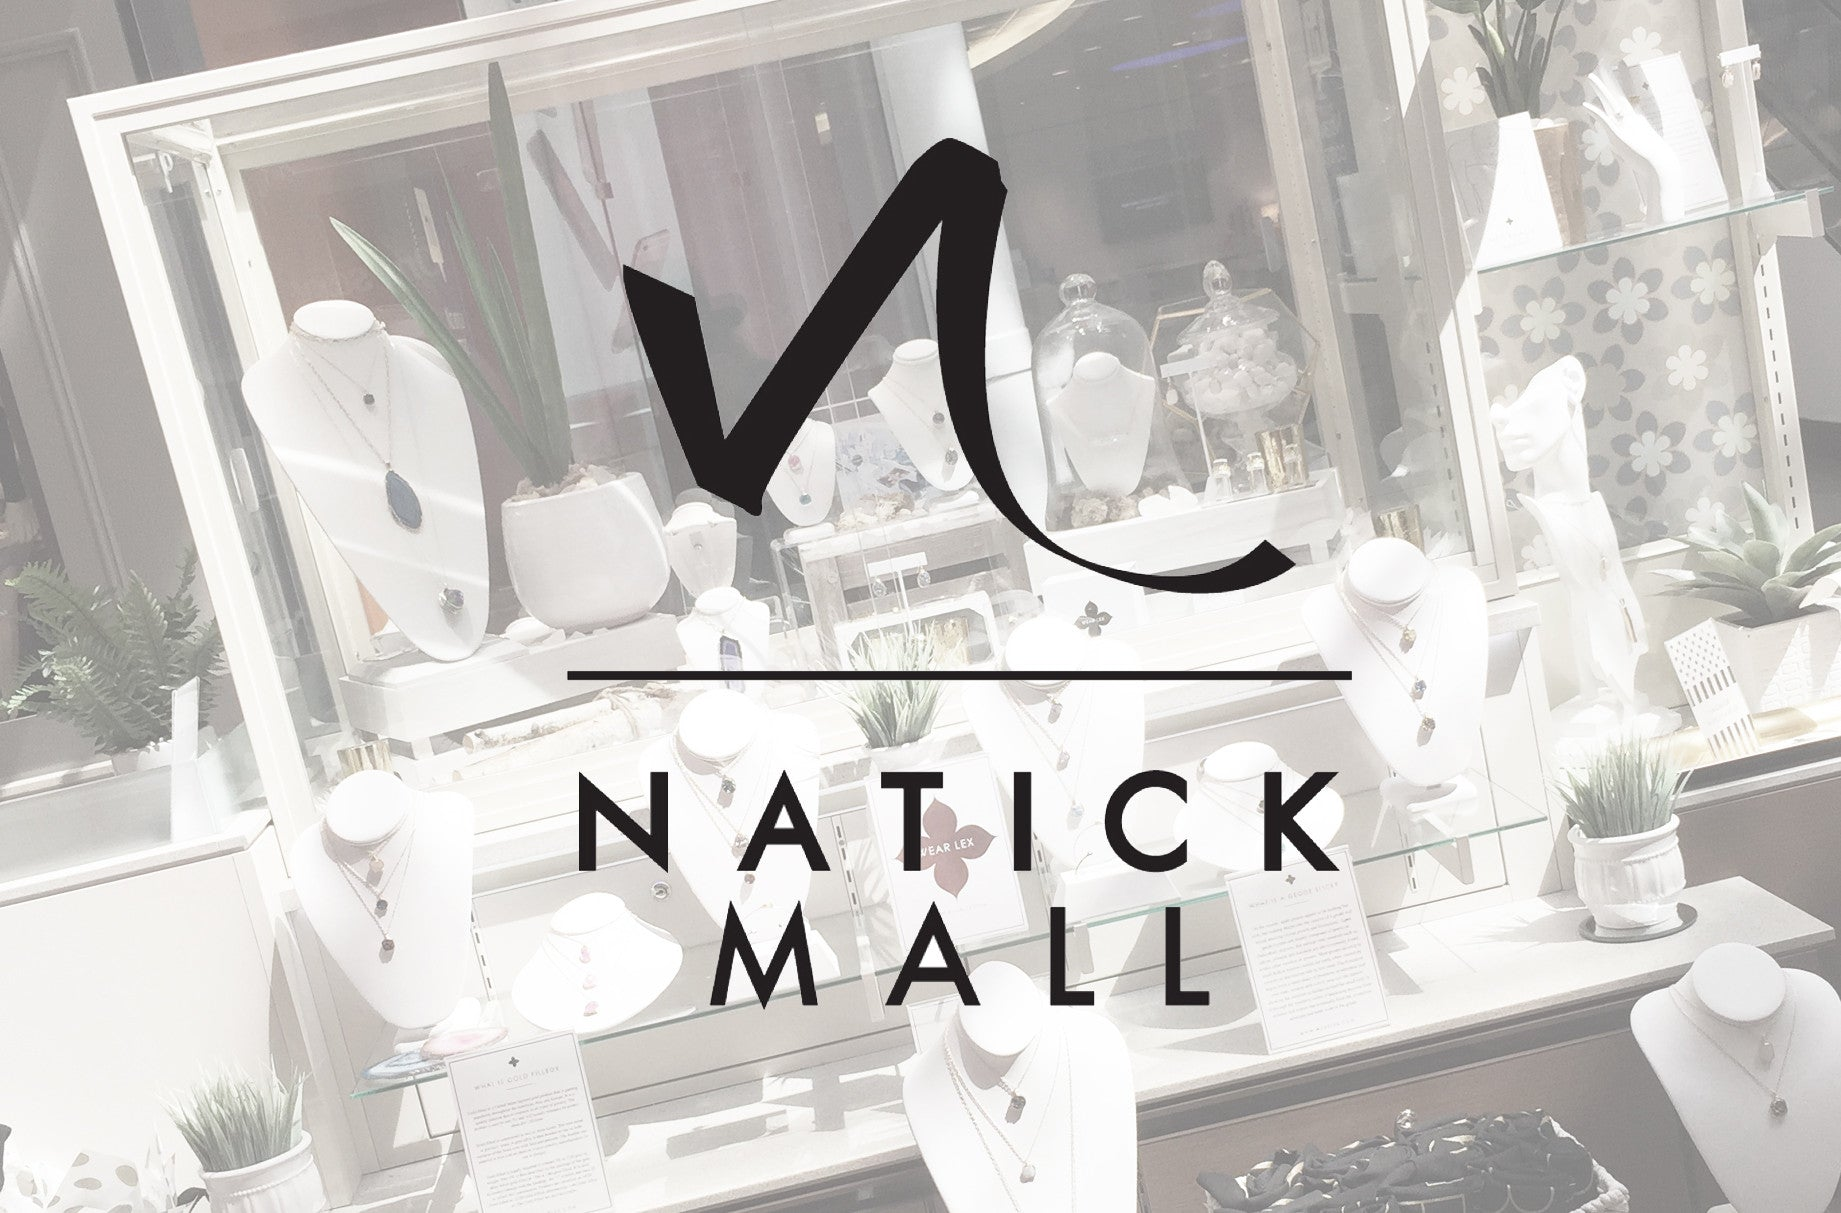 WearLex Is Now Open @ The Natick Mall